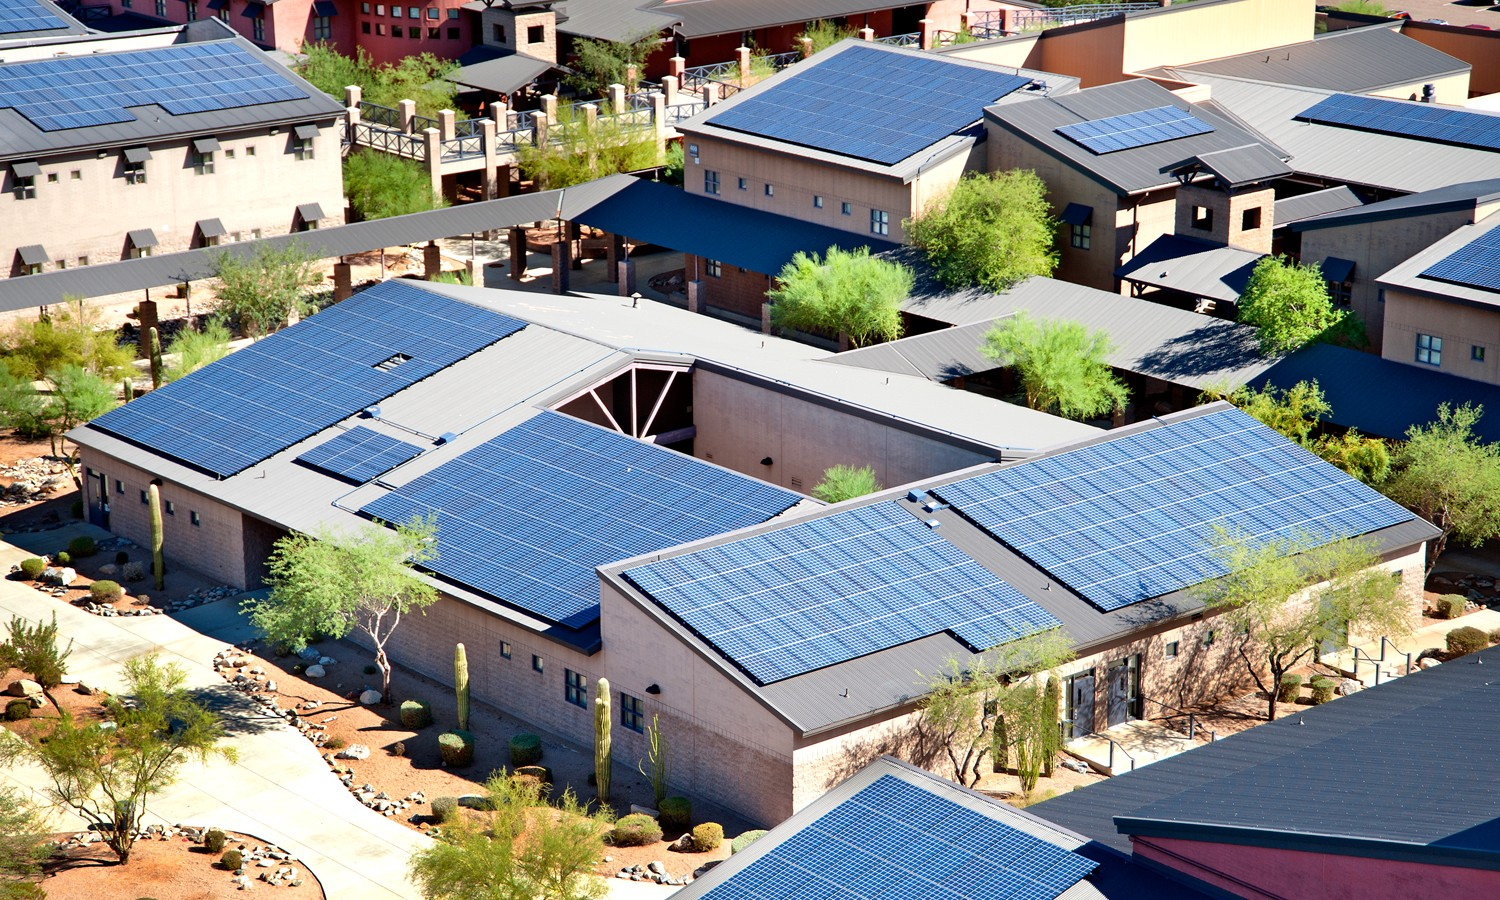 ... Of Solar Panels On The Roofs Of All New Residential And Commercial  Buildings Between One And Ten Stories. (Taller Buildings Require  Significantly More ...